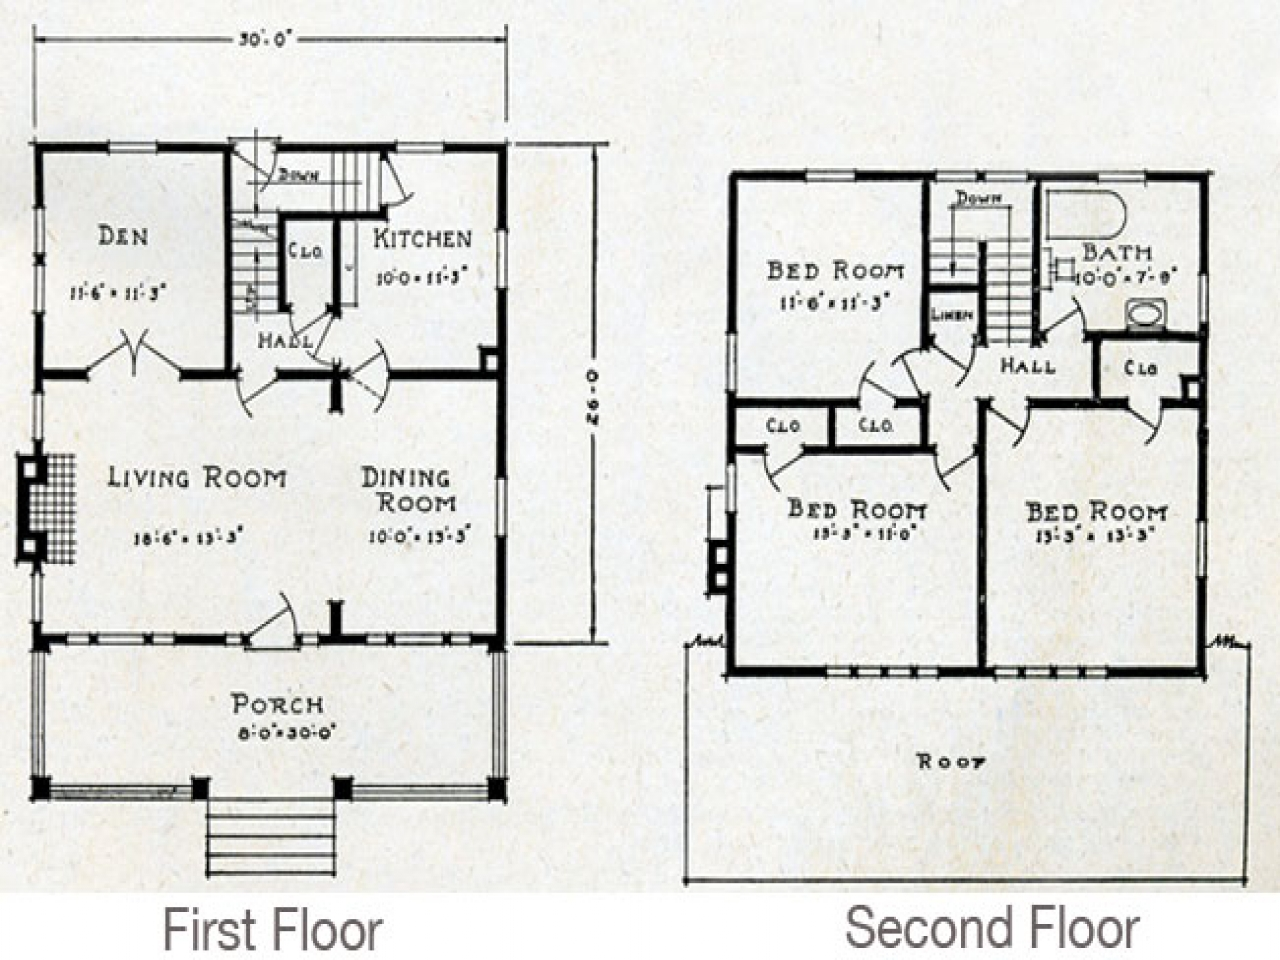 Bungalow house floor plans with dormers bungalow cottage for Floor plans for cottages and bungalows